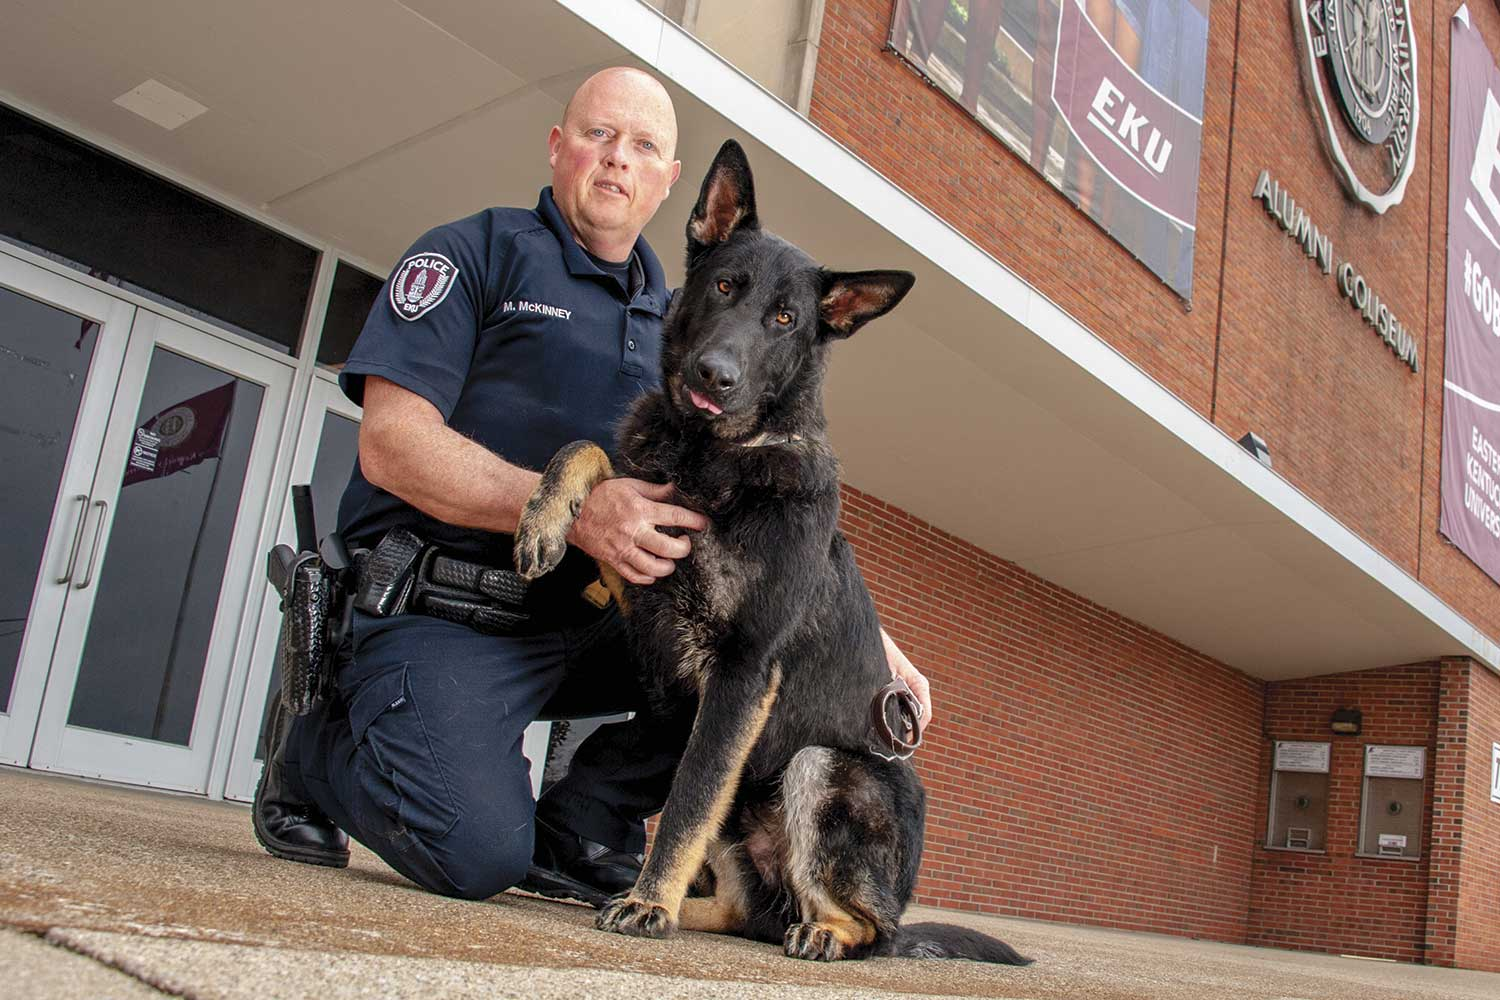 EKUPD Officer Mark McKinney is training Havoc, a 10-month-old German shephard who will be EKU's first K-9. Havoc will also be Madison County's first bomb dog. (Photo by Jim Robertson)